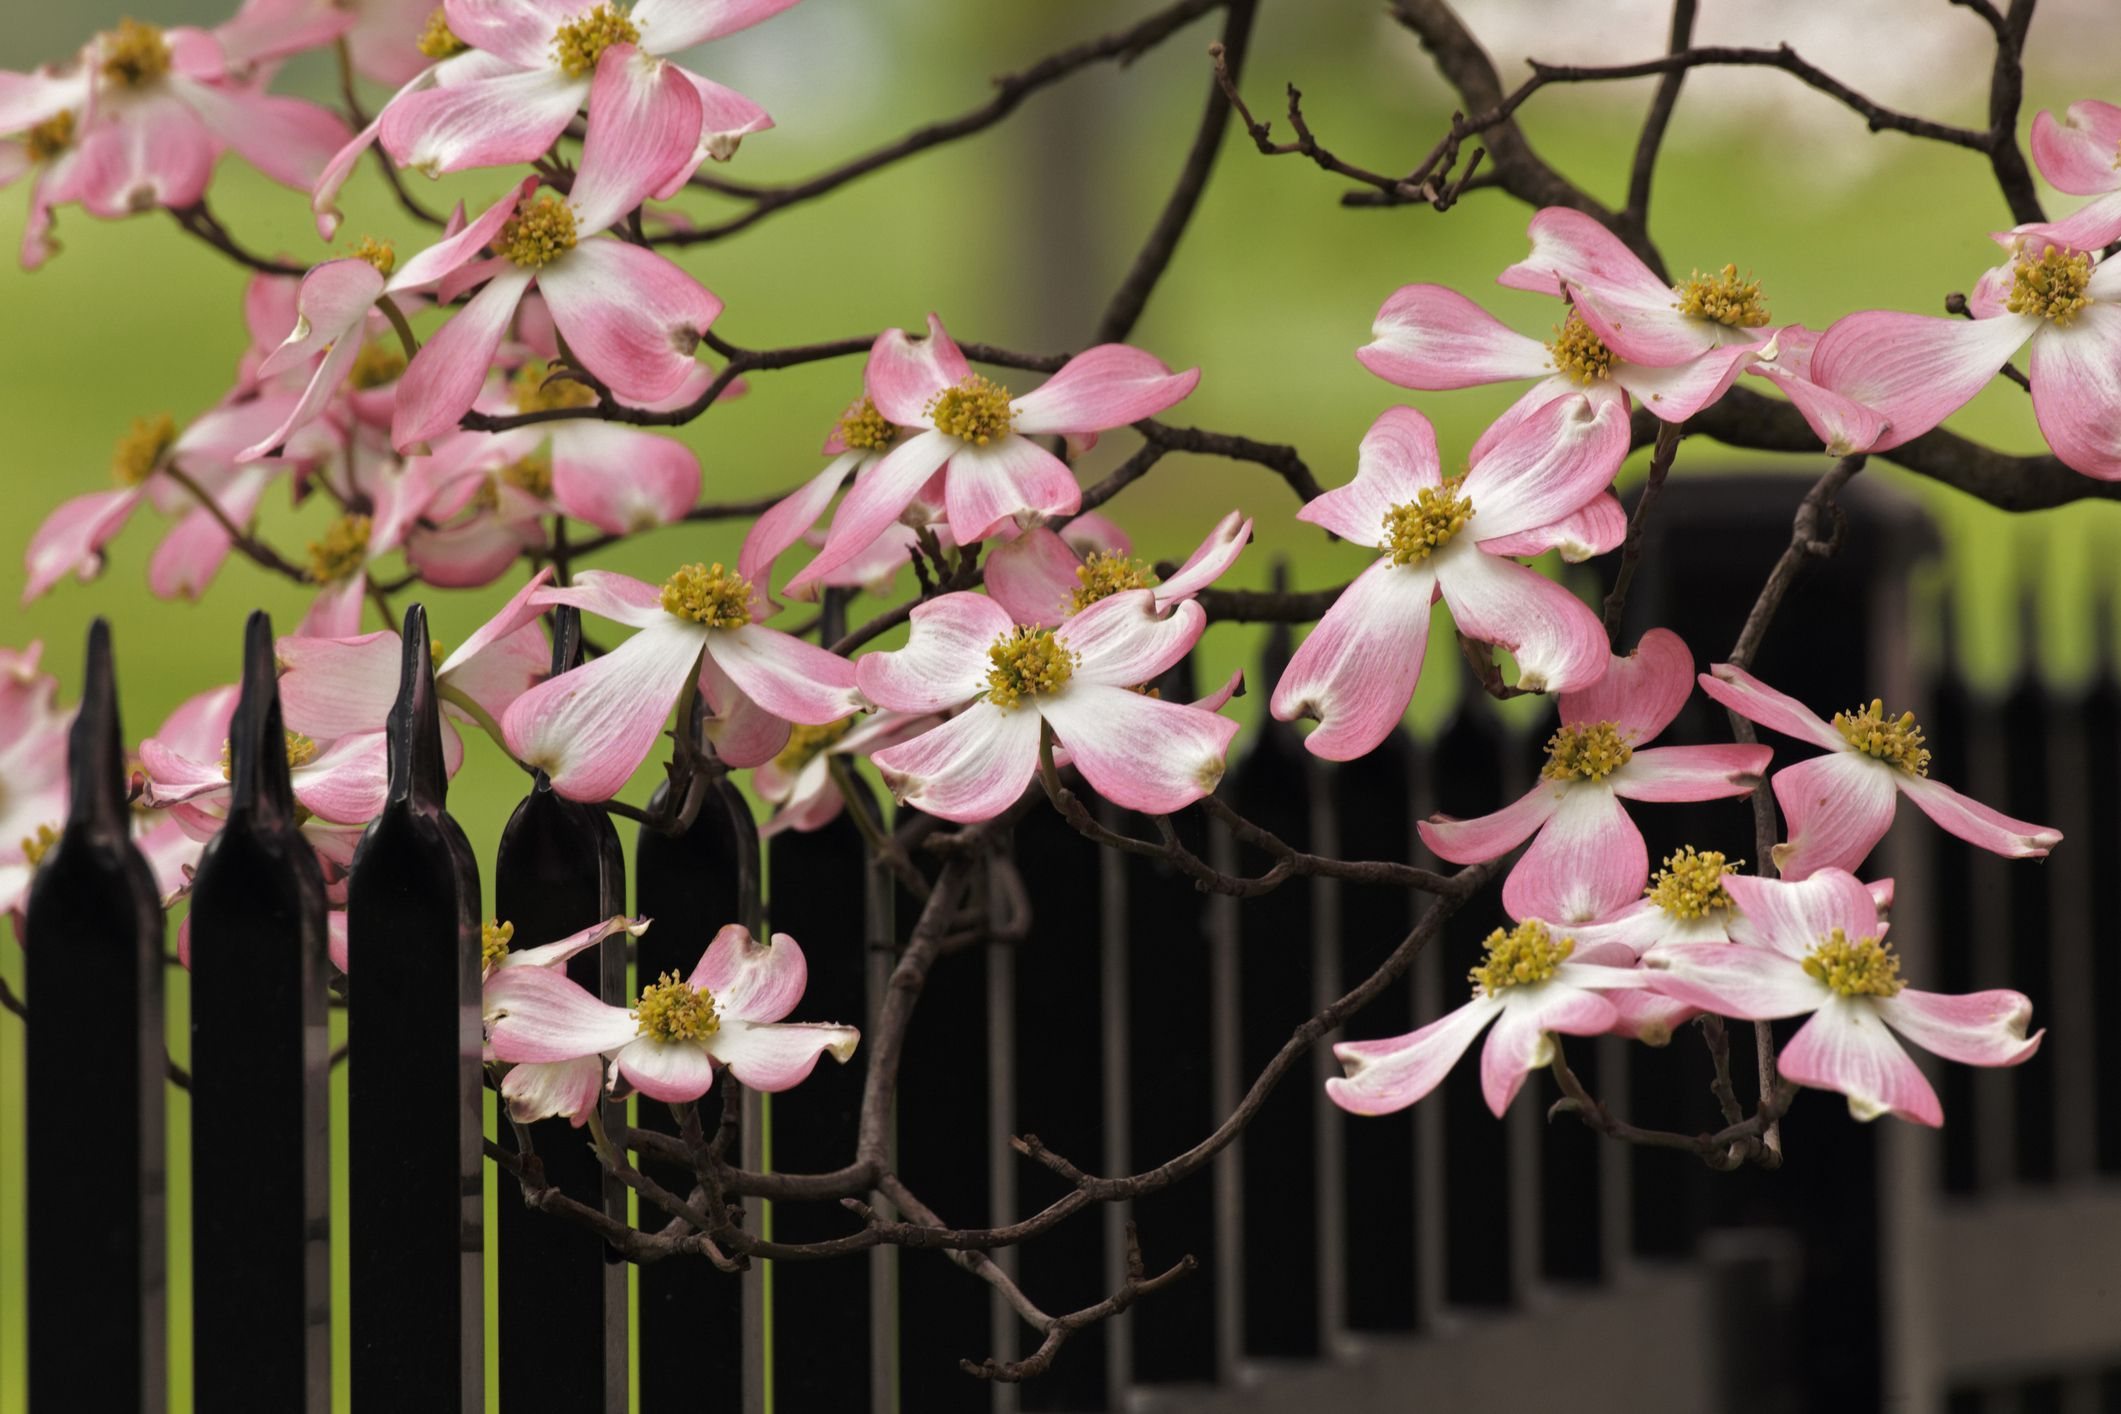 12 Species Of Dogwood Trees Shrubs And Subshrubs